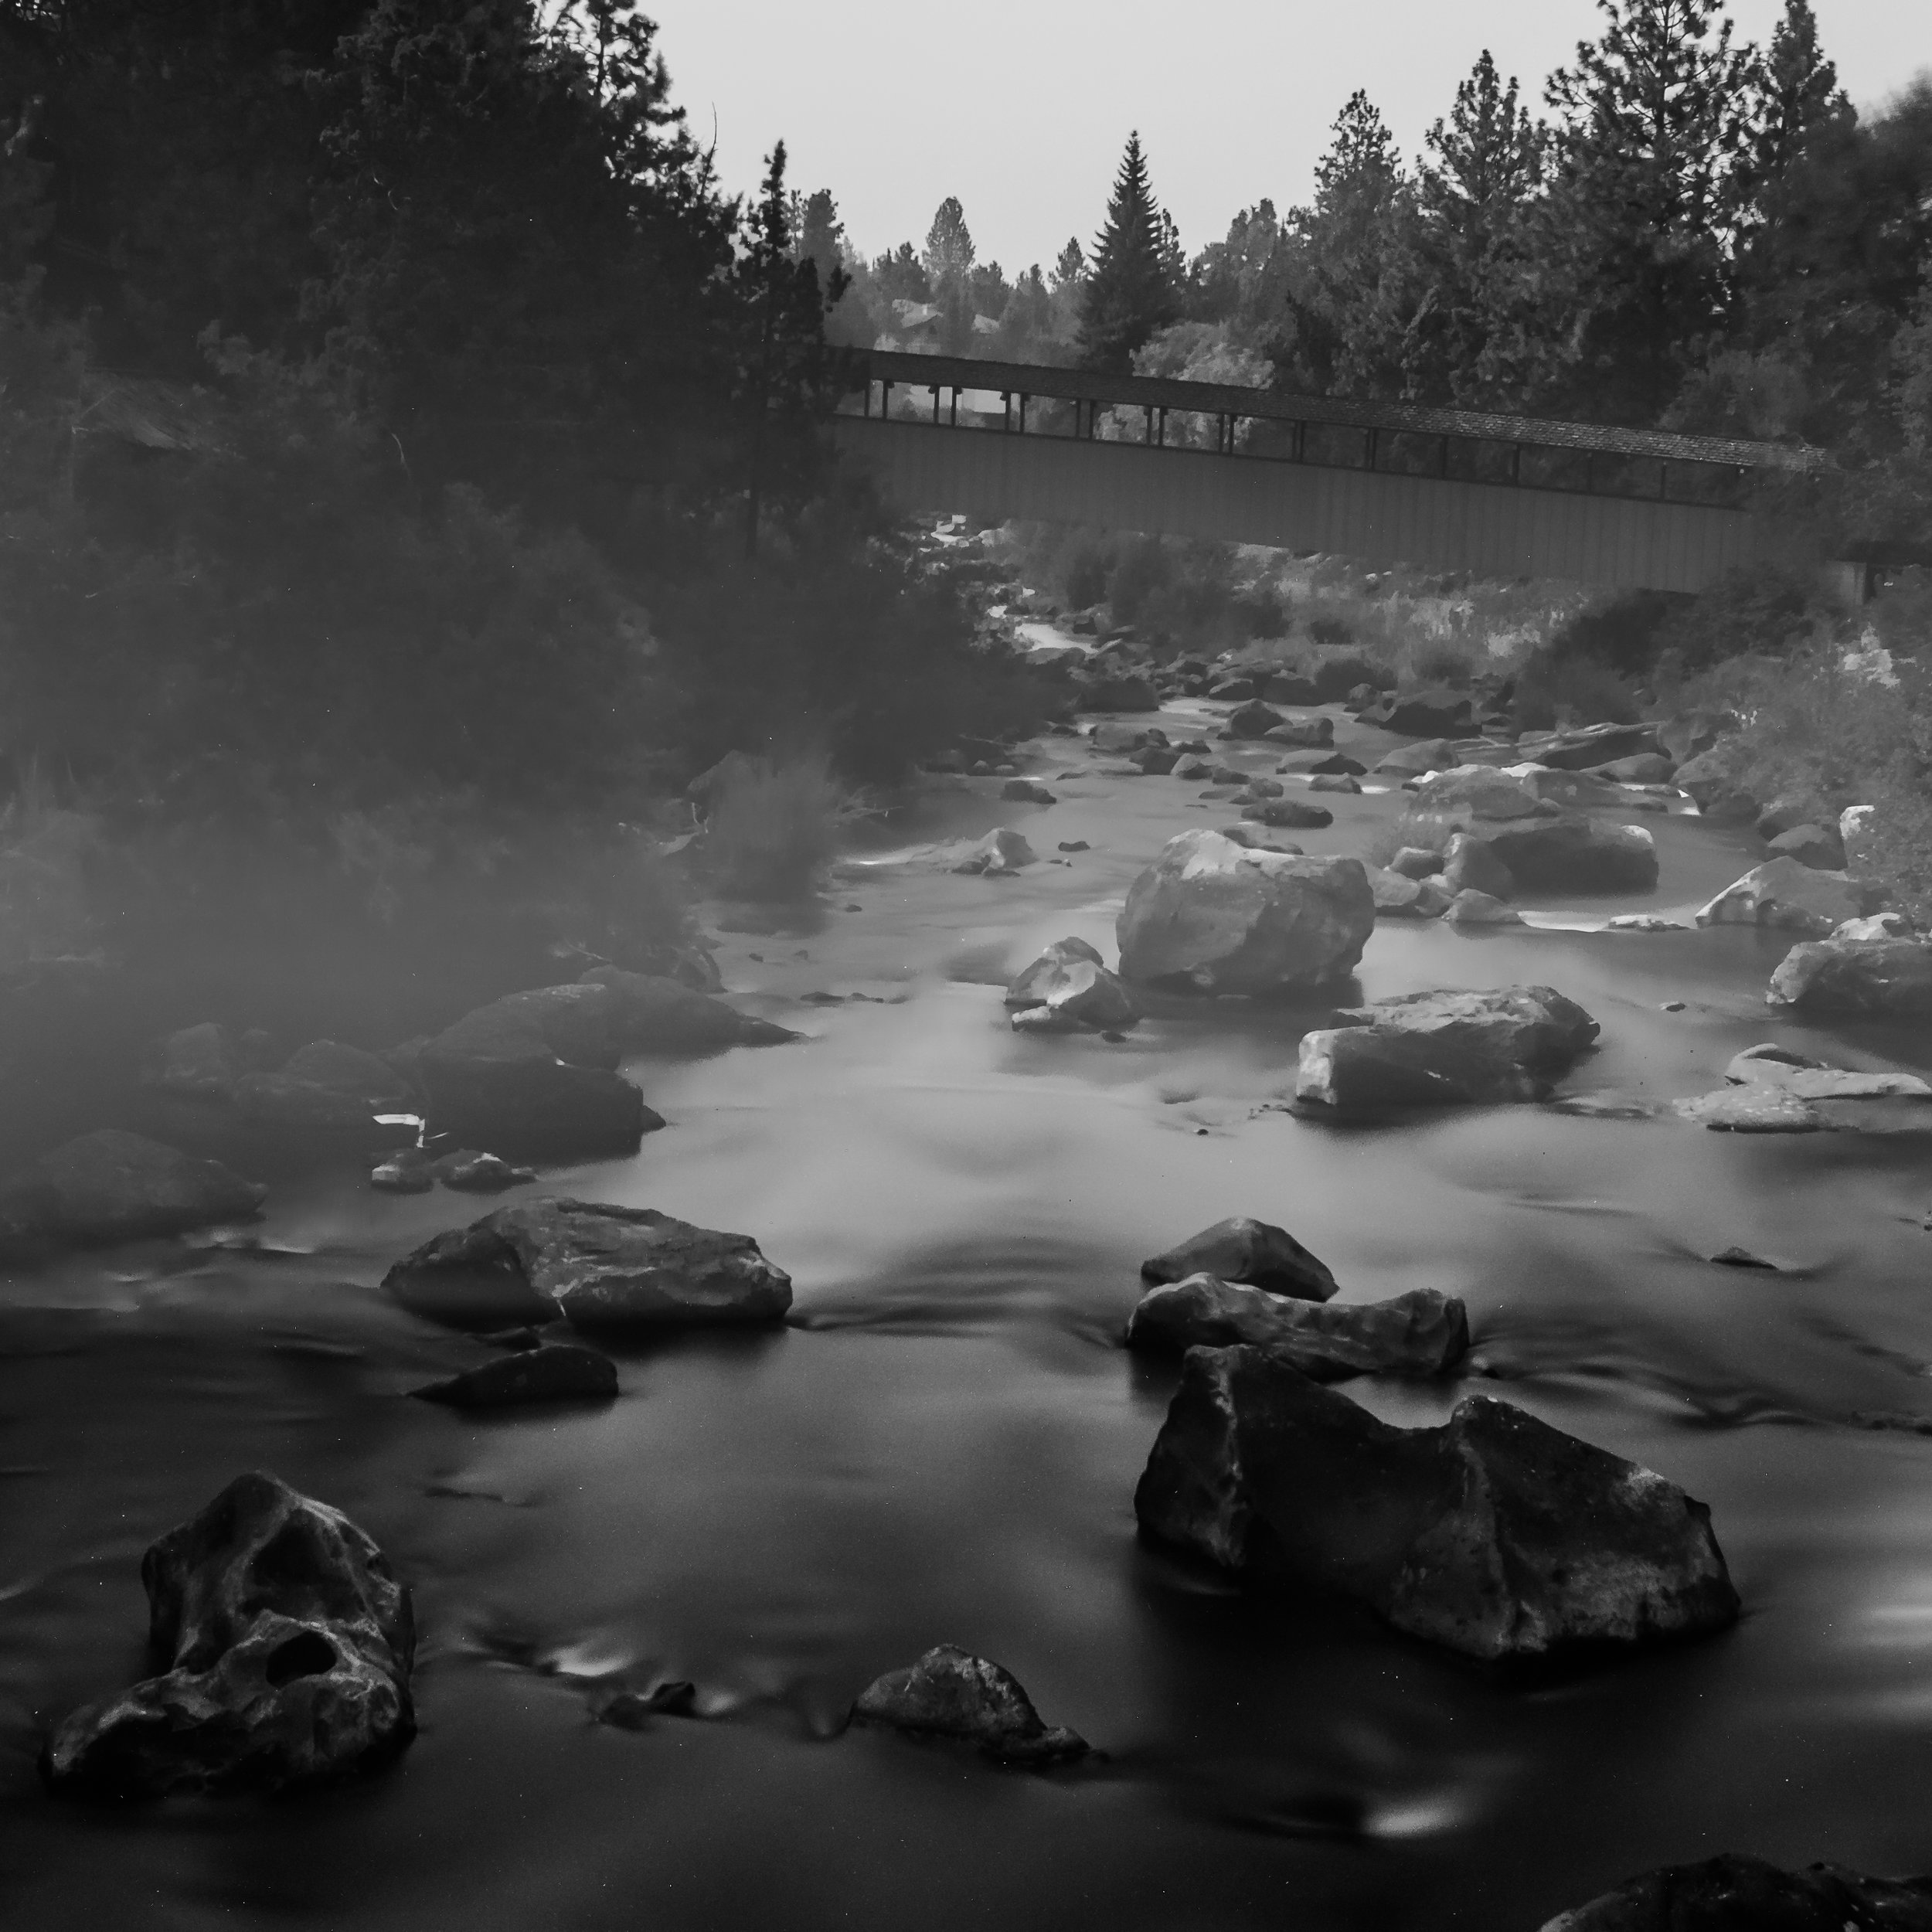 Under the bridge, Bend, OR (ISO 200, f/11, 294.0s)